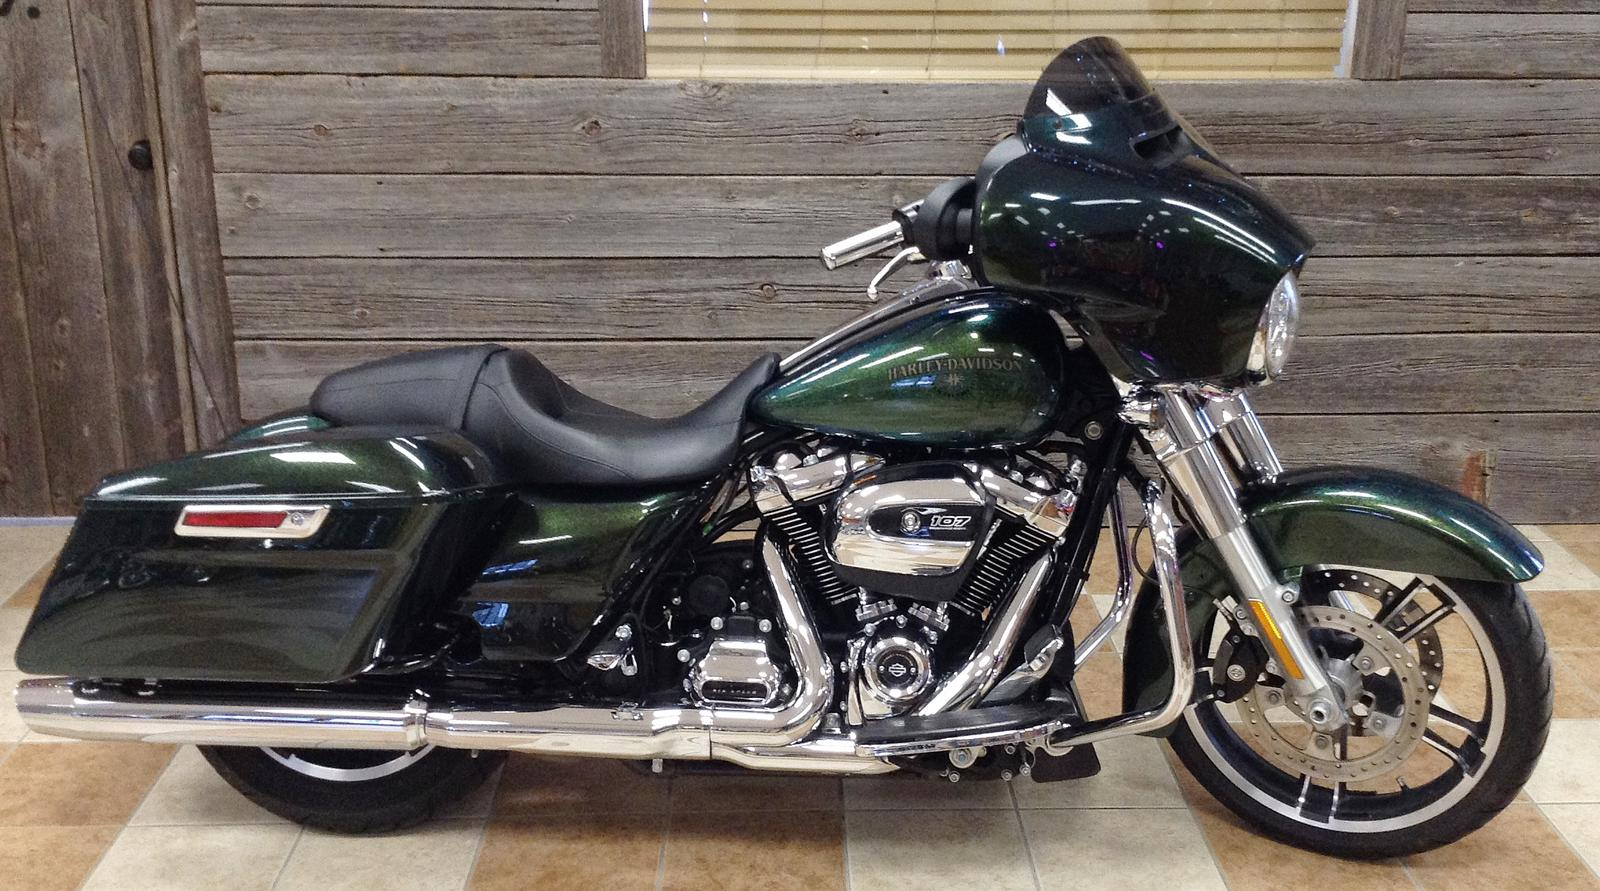 2018 Harley Davidson Street Glide Hard Candy Custom Option